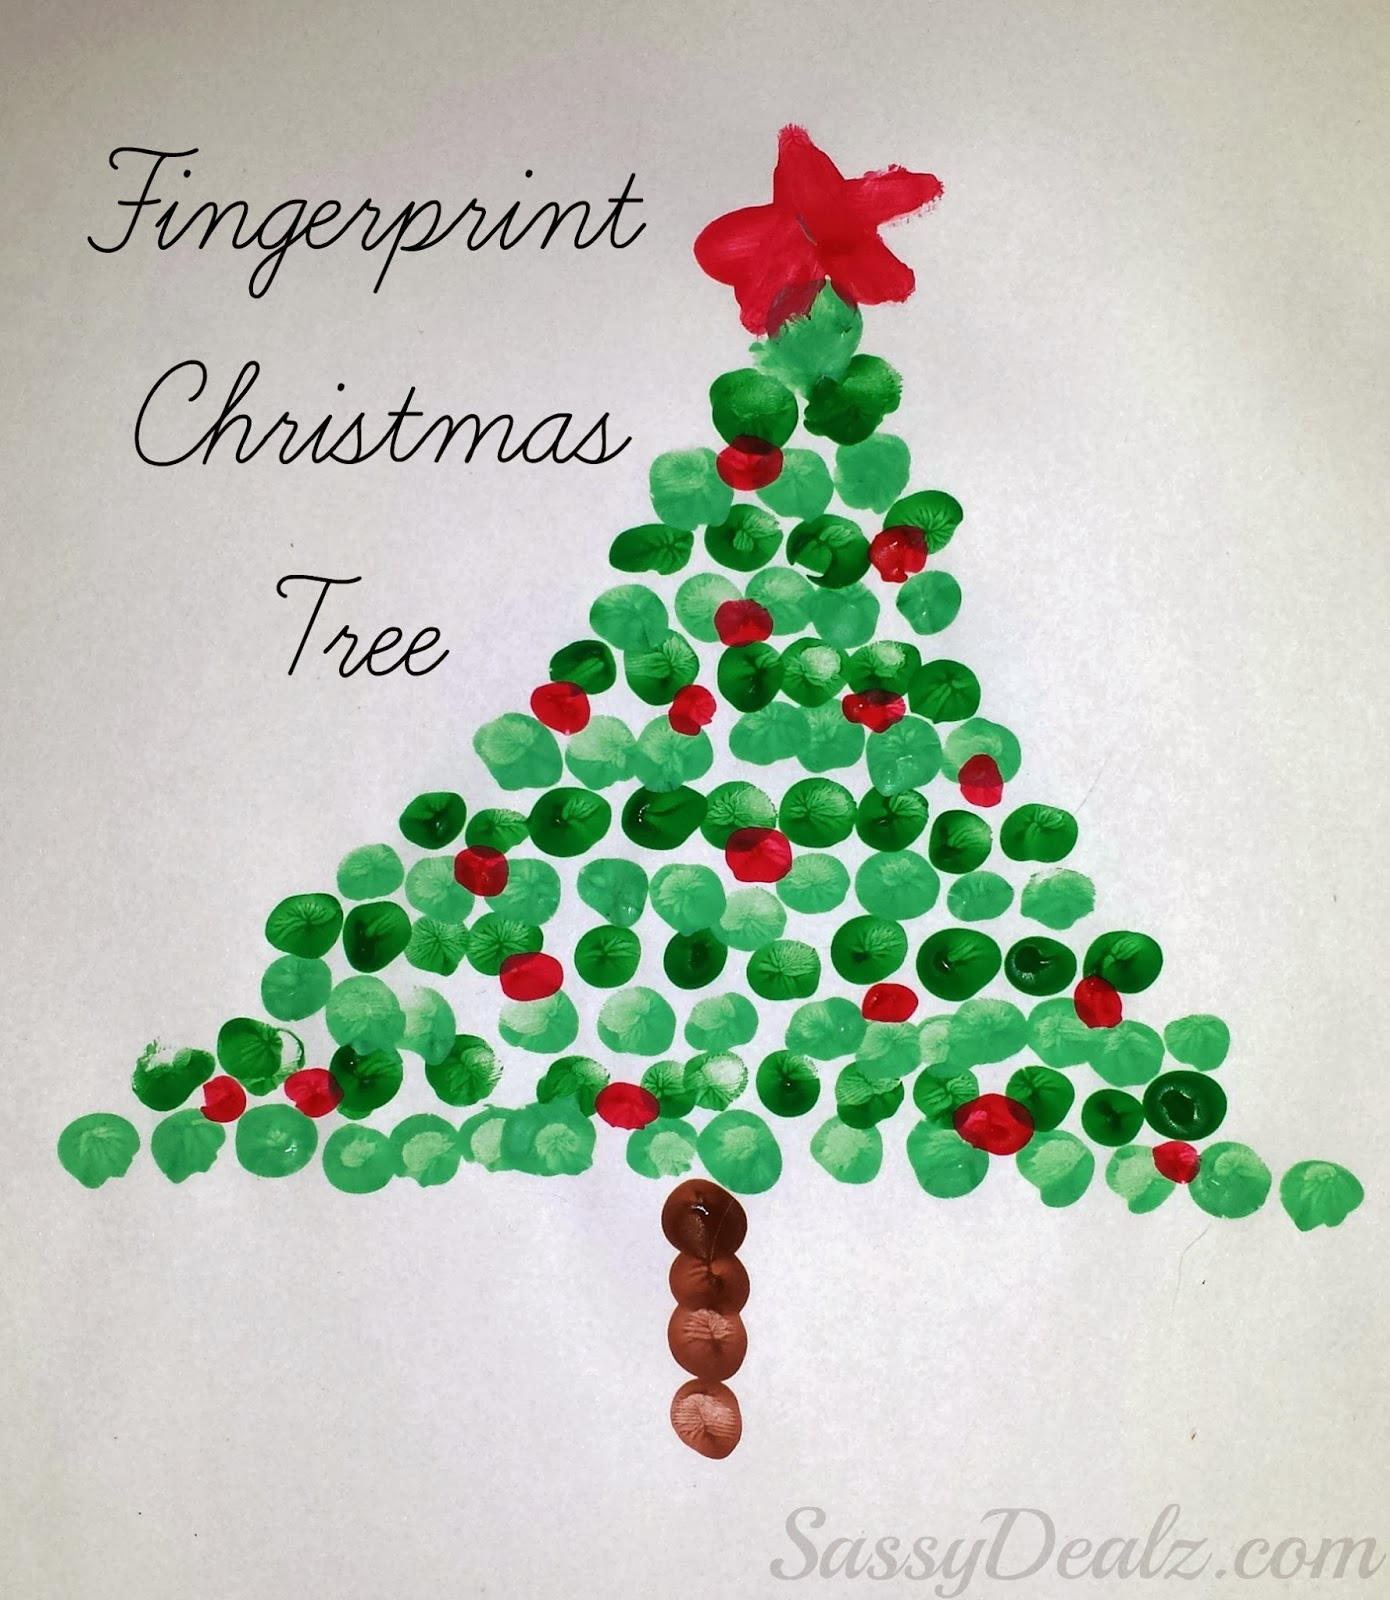 Fingerprint Christmas Tree Craft For Kids - Crafty Morning